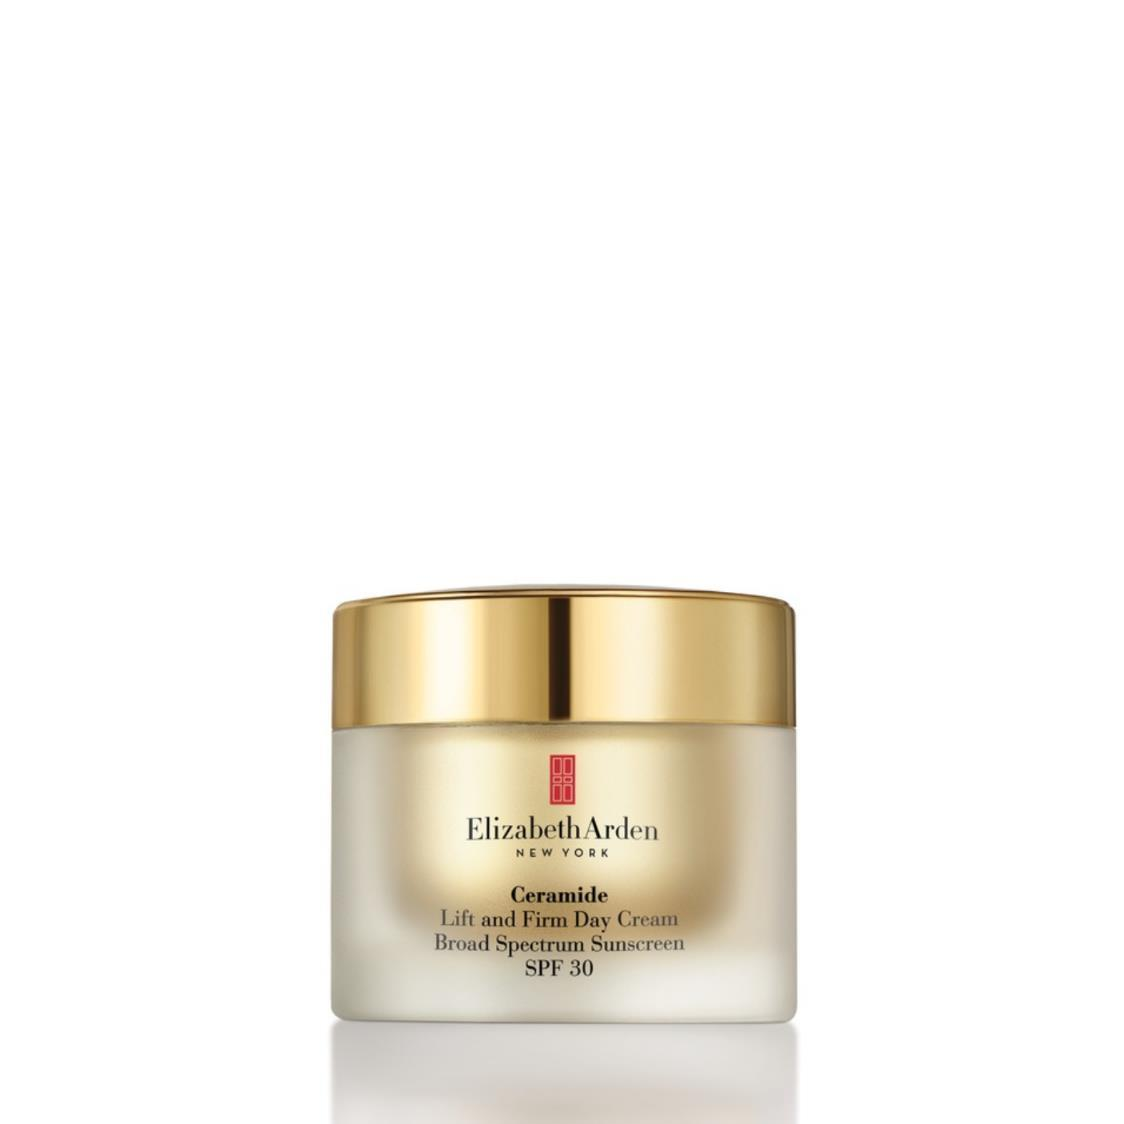 Elizabeth Arden Ceramide Lift and Firm Day Cream SPF 30 PA 50ml